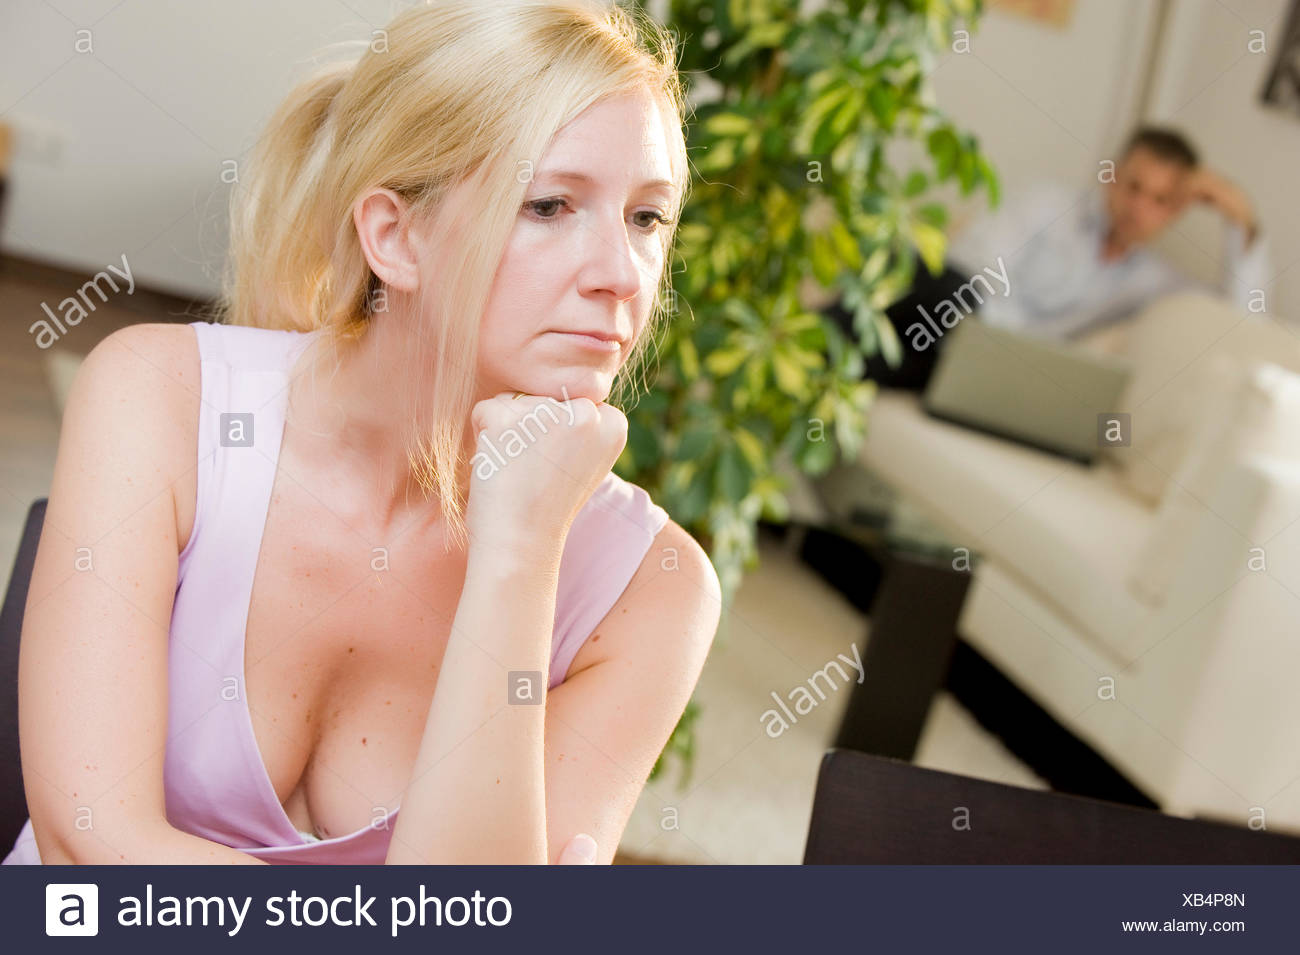 Symbolic image for crisis in a relationship Stock Photo